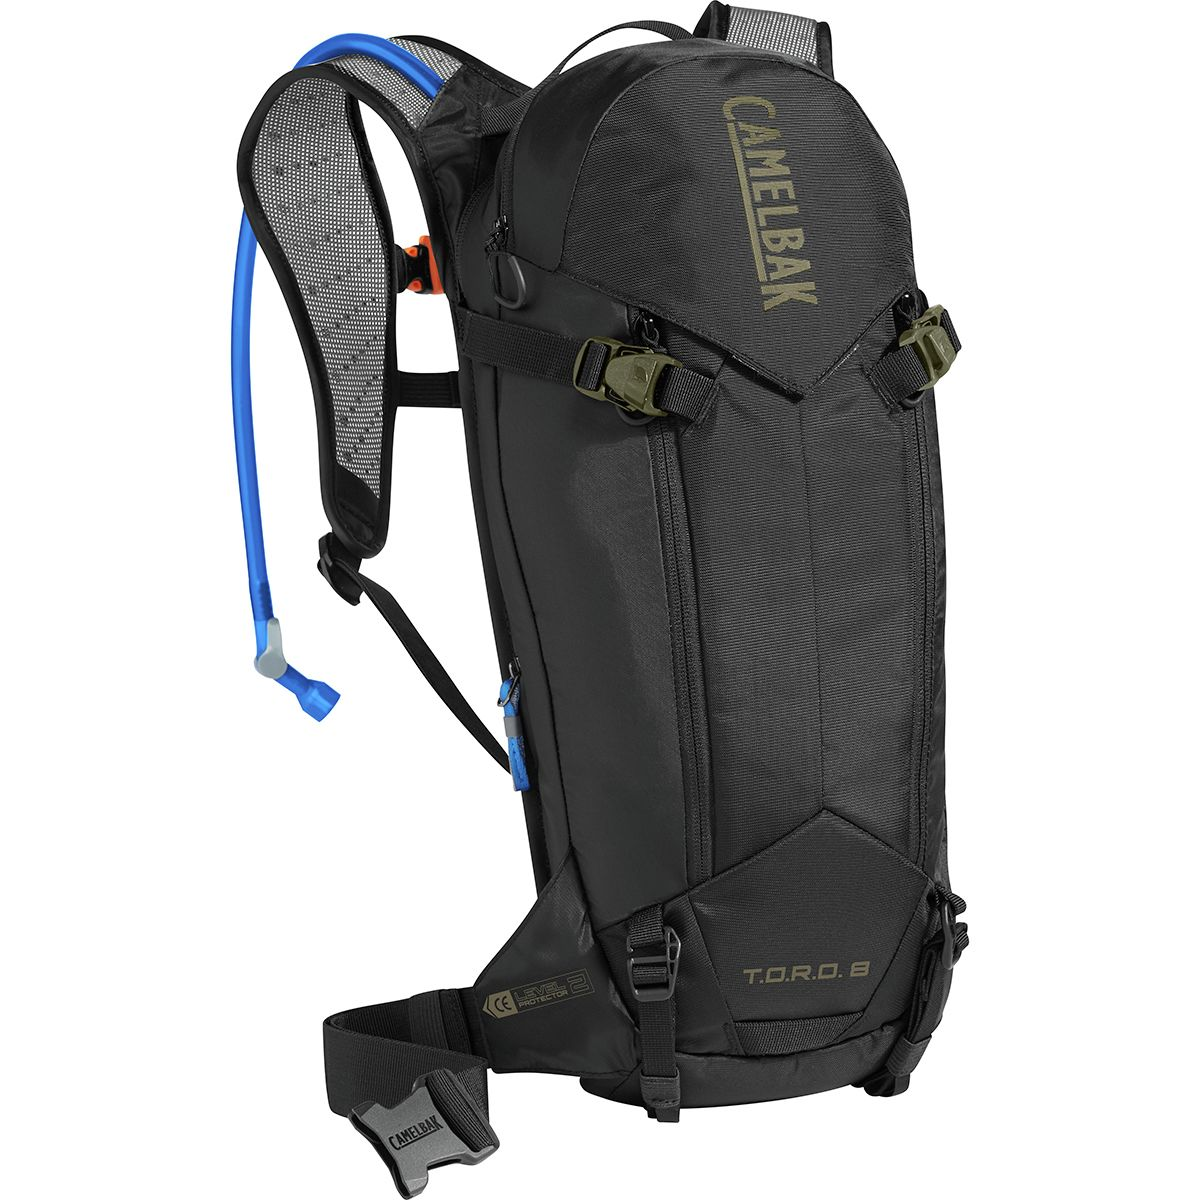 Camelbak T O R Protector 8l Backpack